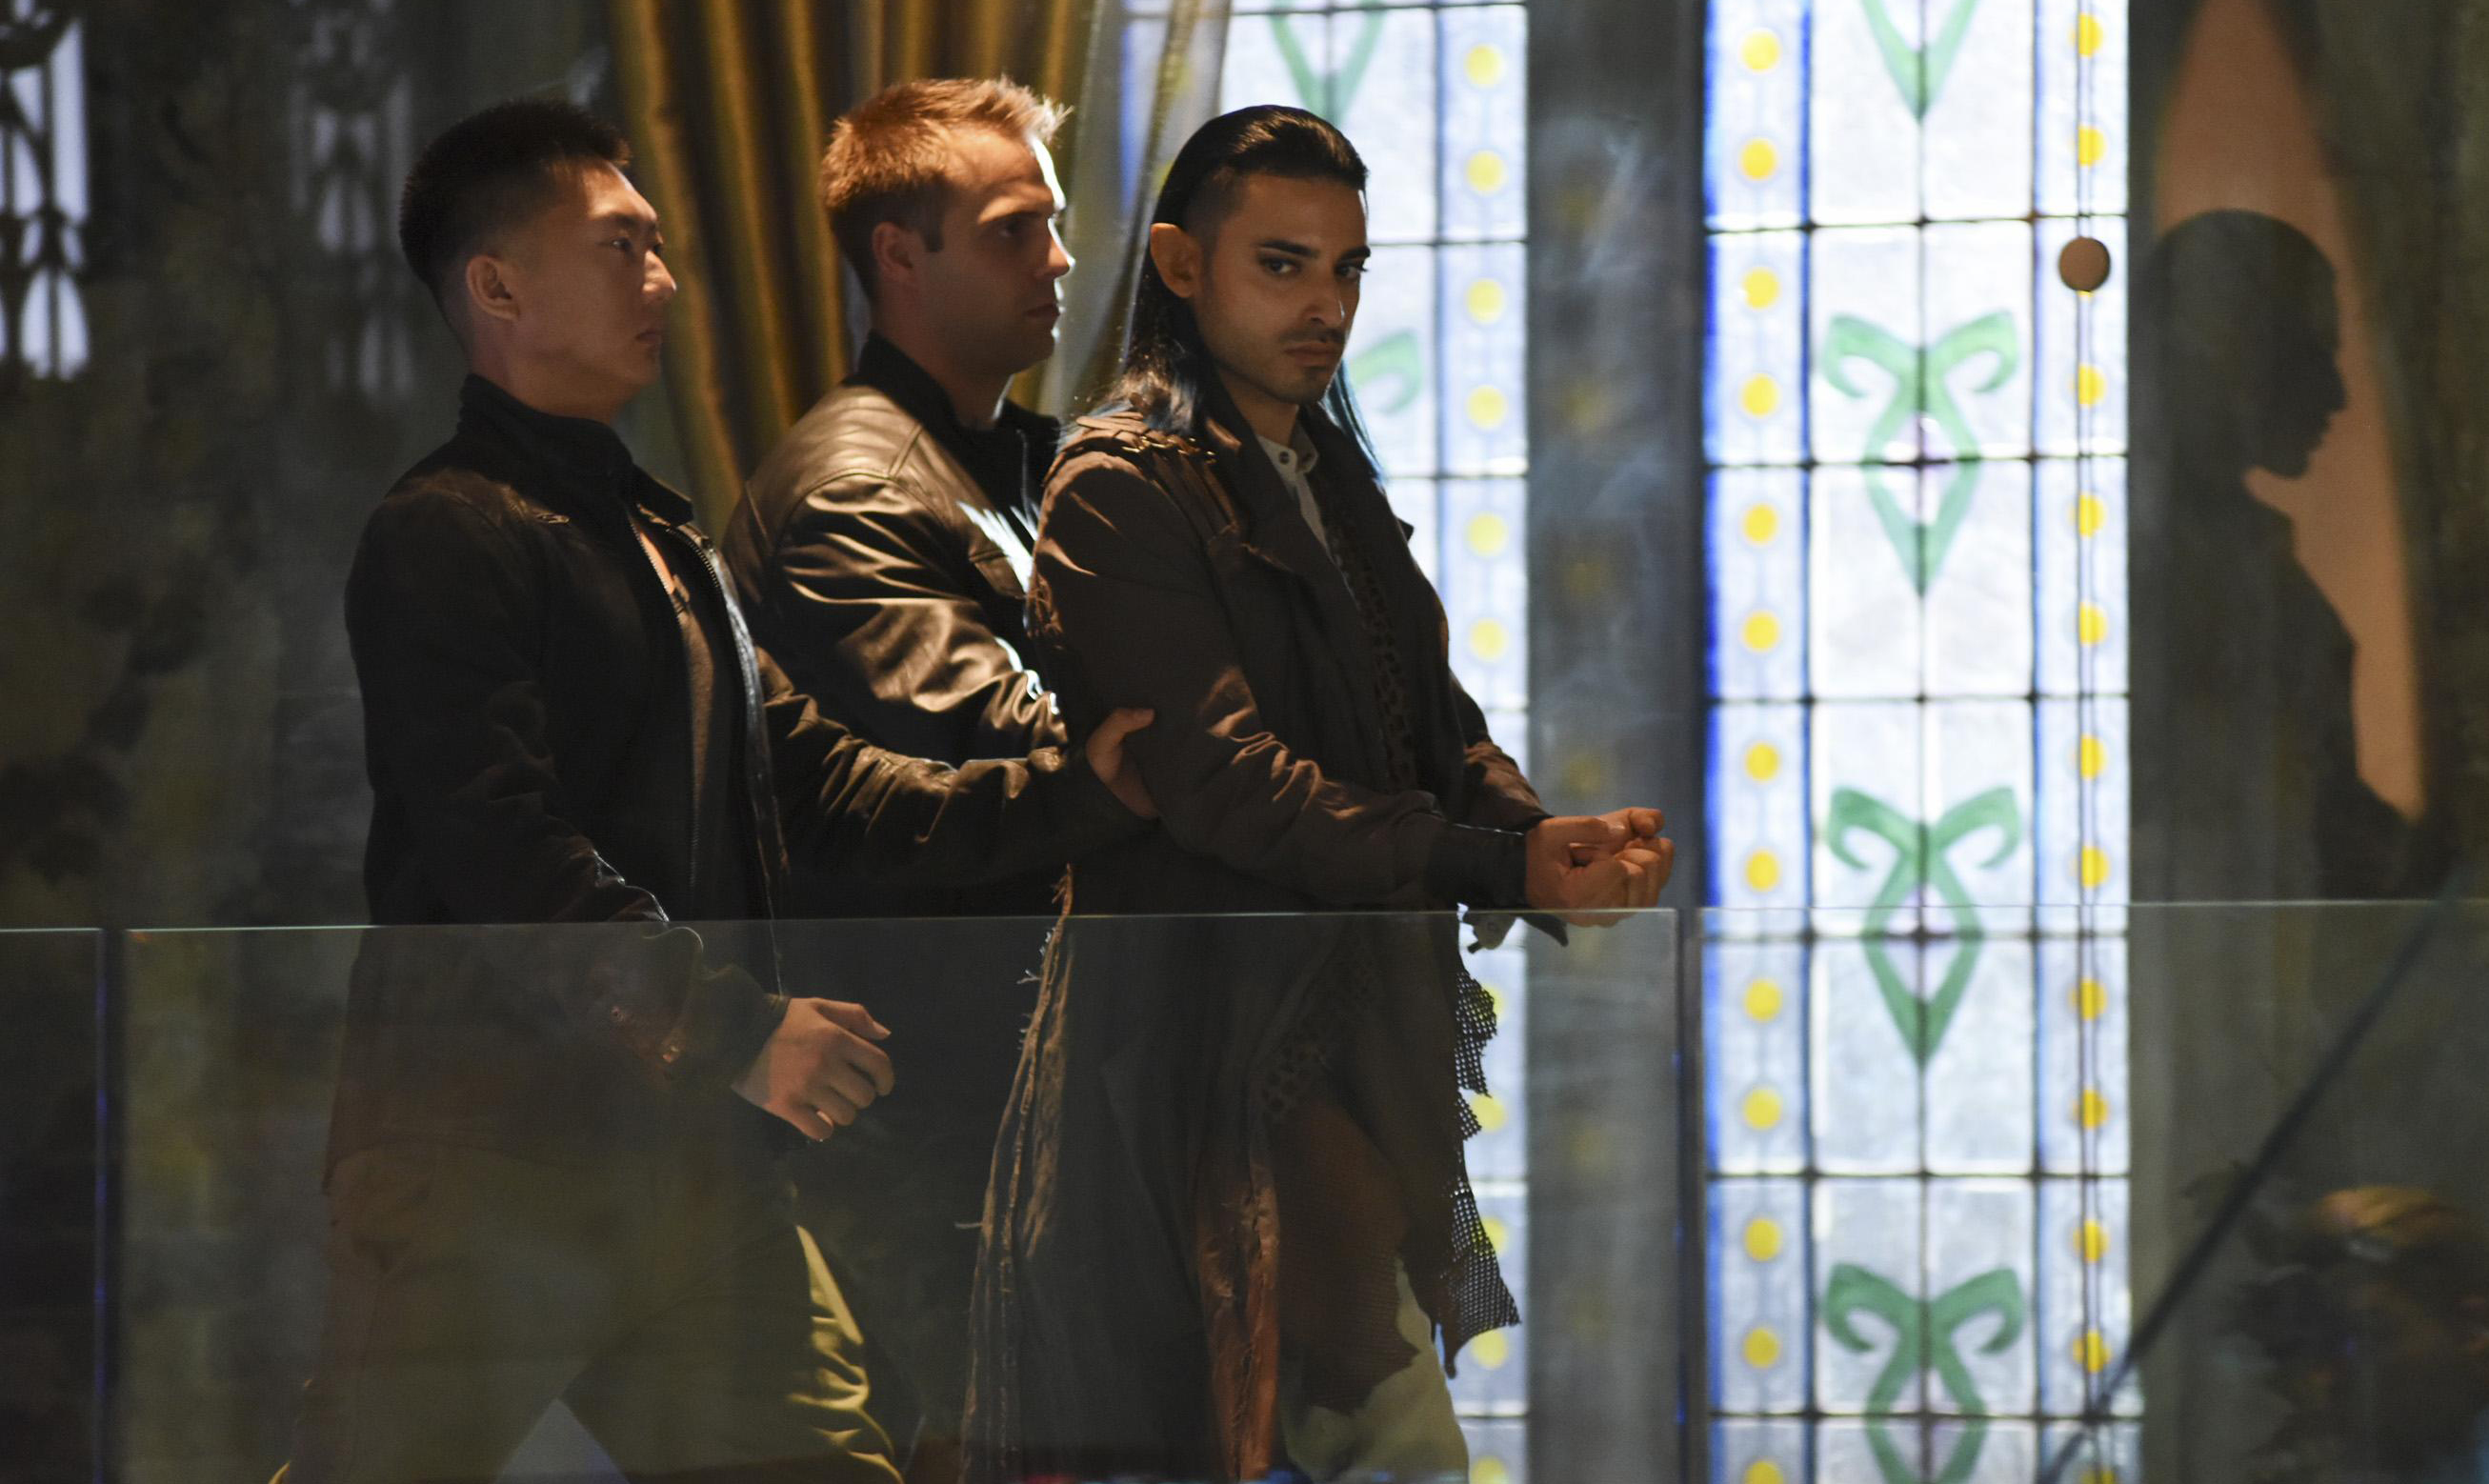 shadowhunters-episode-9-still-02